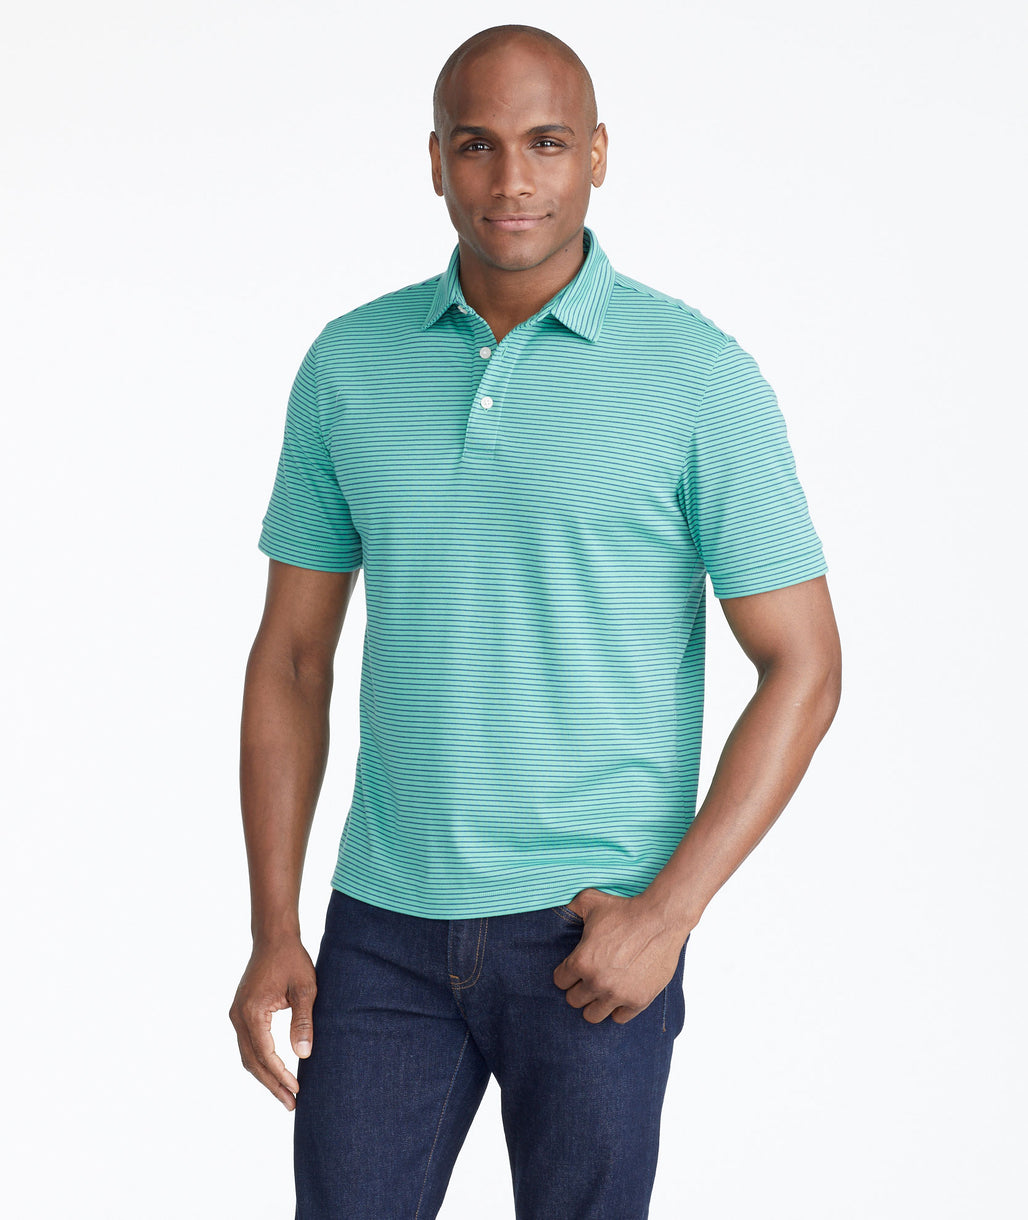 Model wearing a Green The Wrinkle-Free Polo